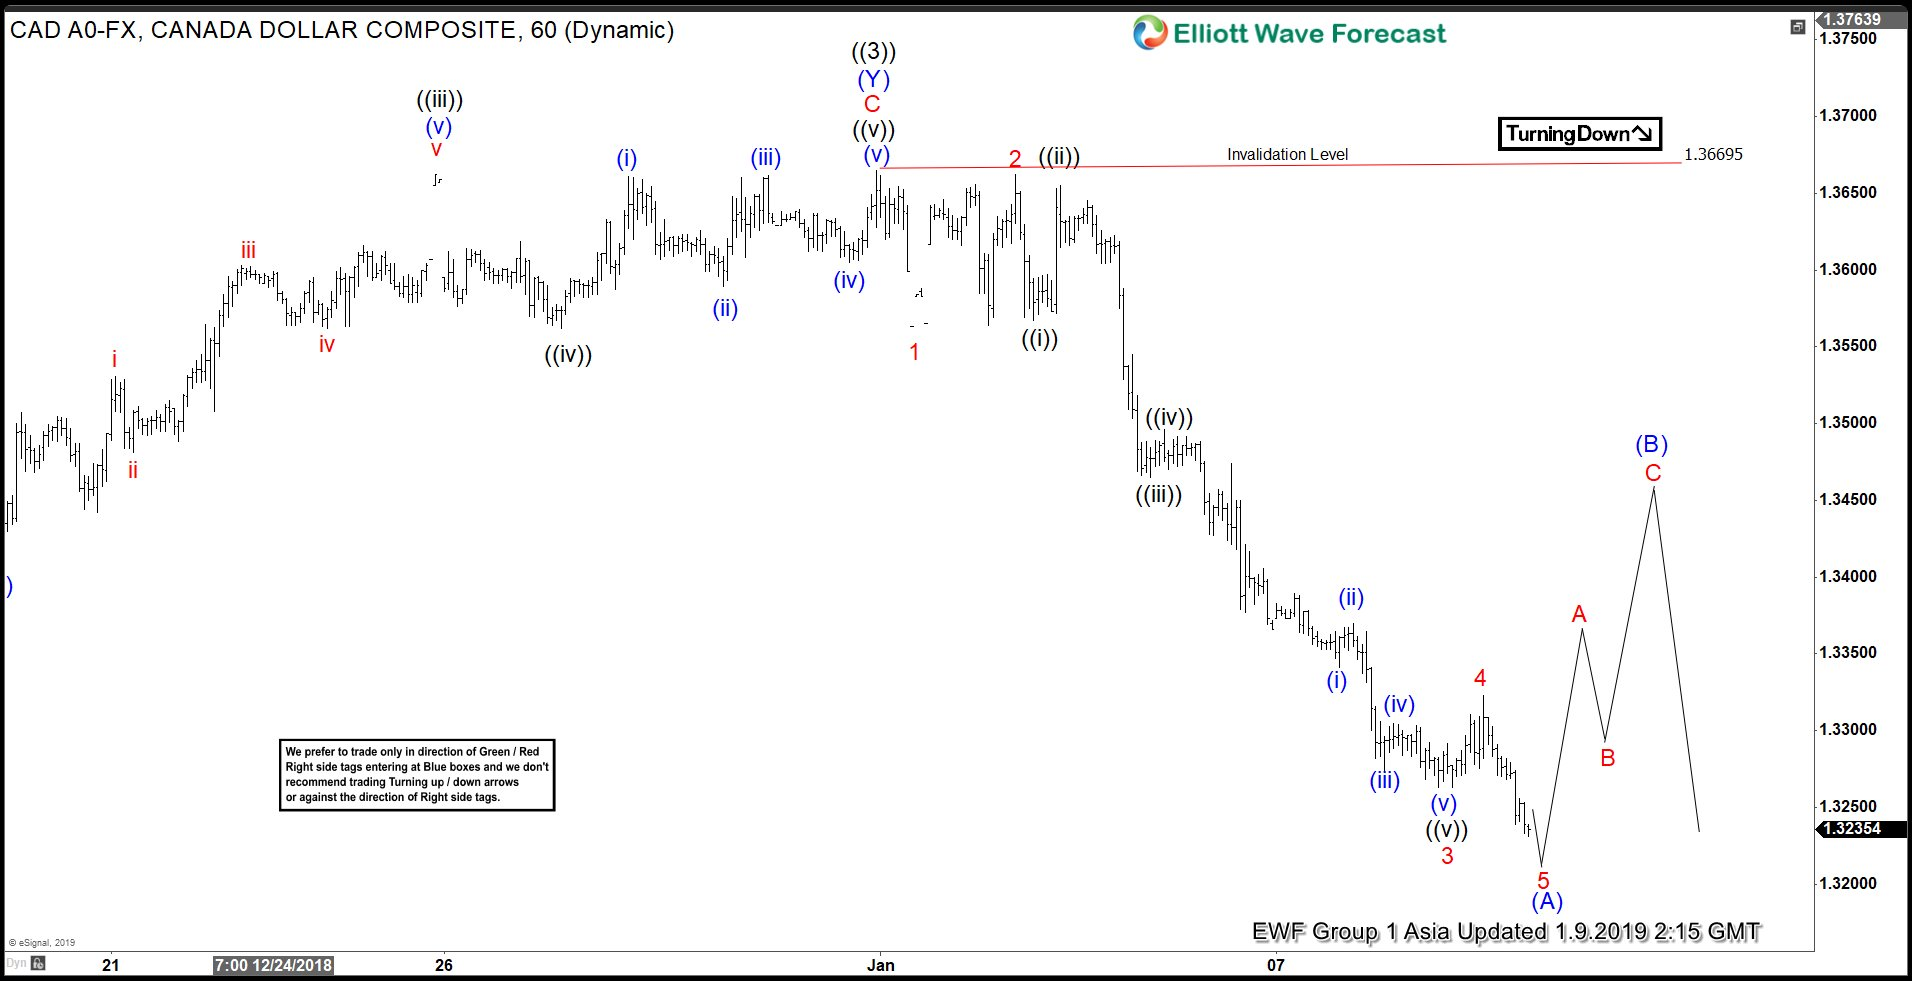 Elliott Wave View suggests impulsive move in USDCAD